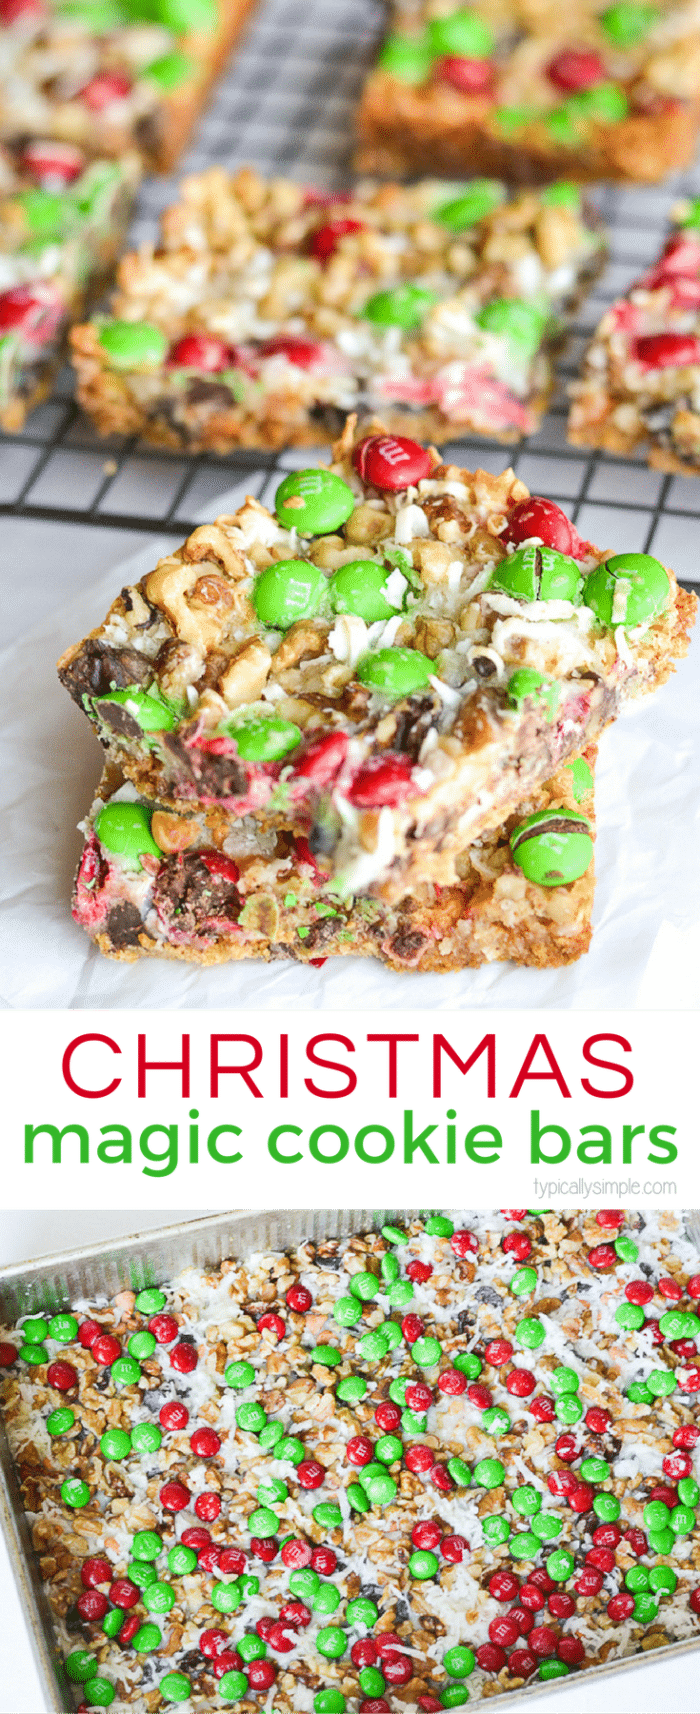 These Christmas Magic Cookie Bars are SO simple to make! They are a perfect treat to make with the kiddos for parties or to package up as a yummy gift.